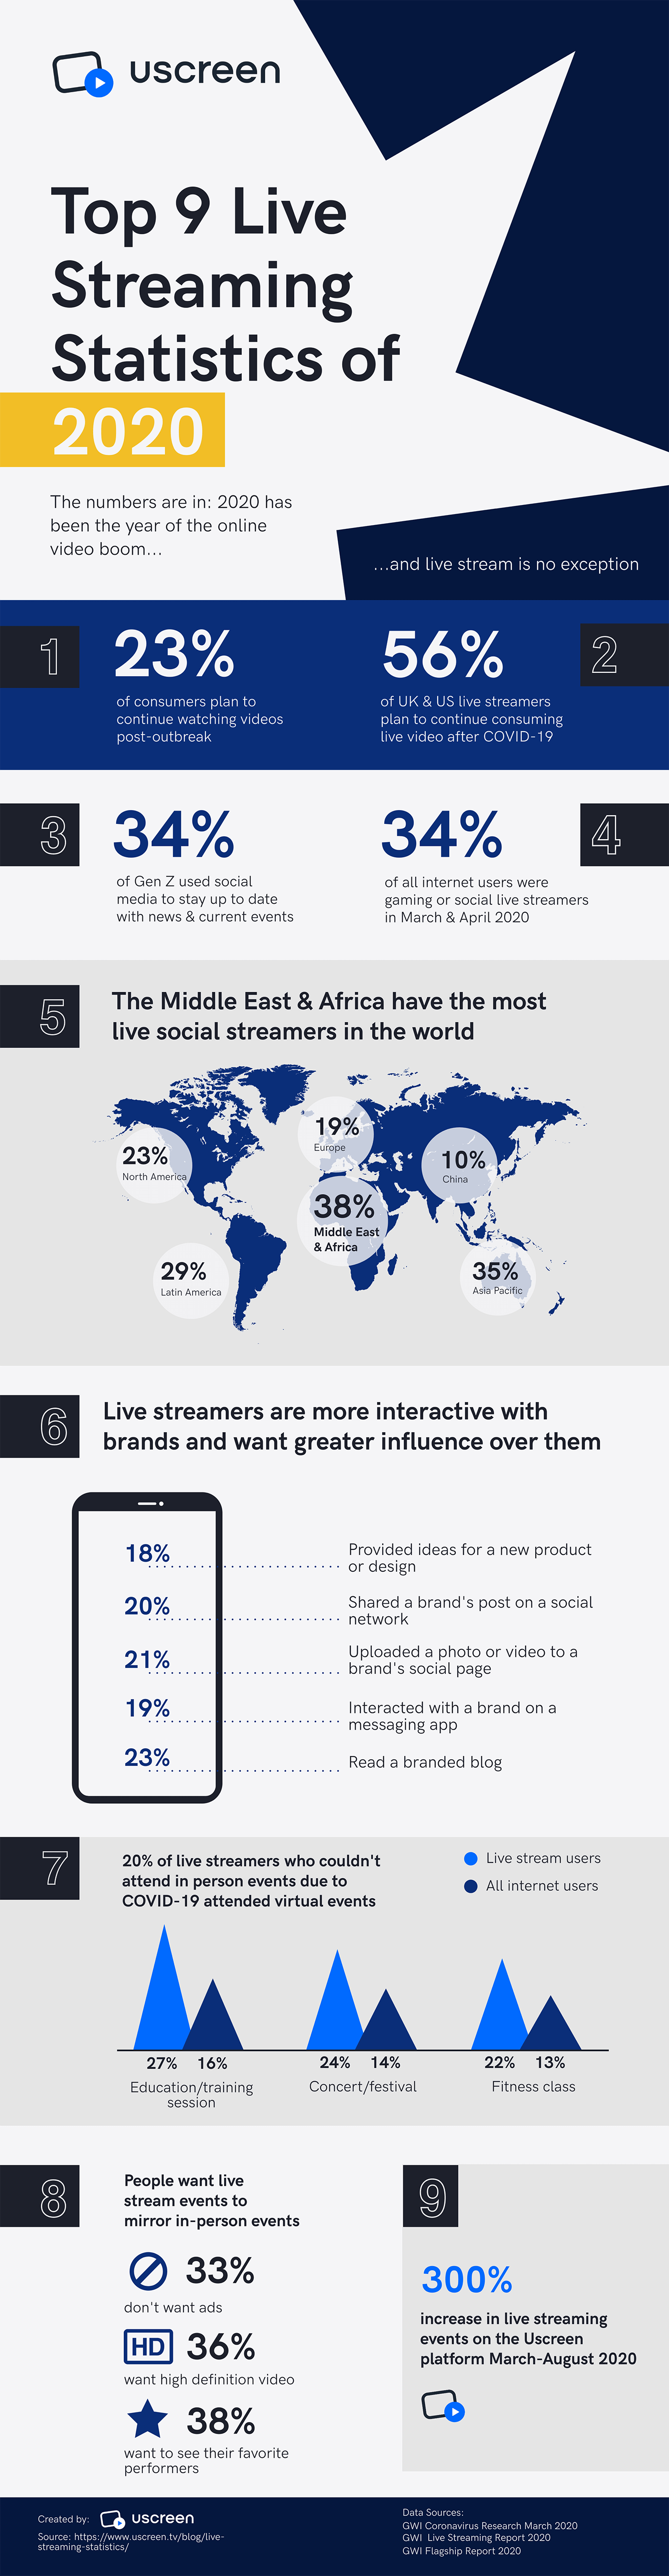 Top 9 live streaming stats of 2020 infographic